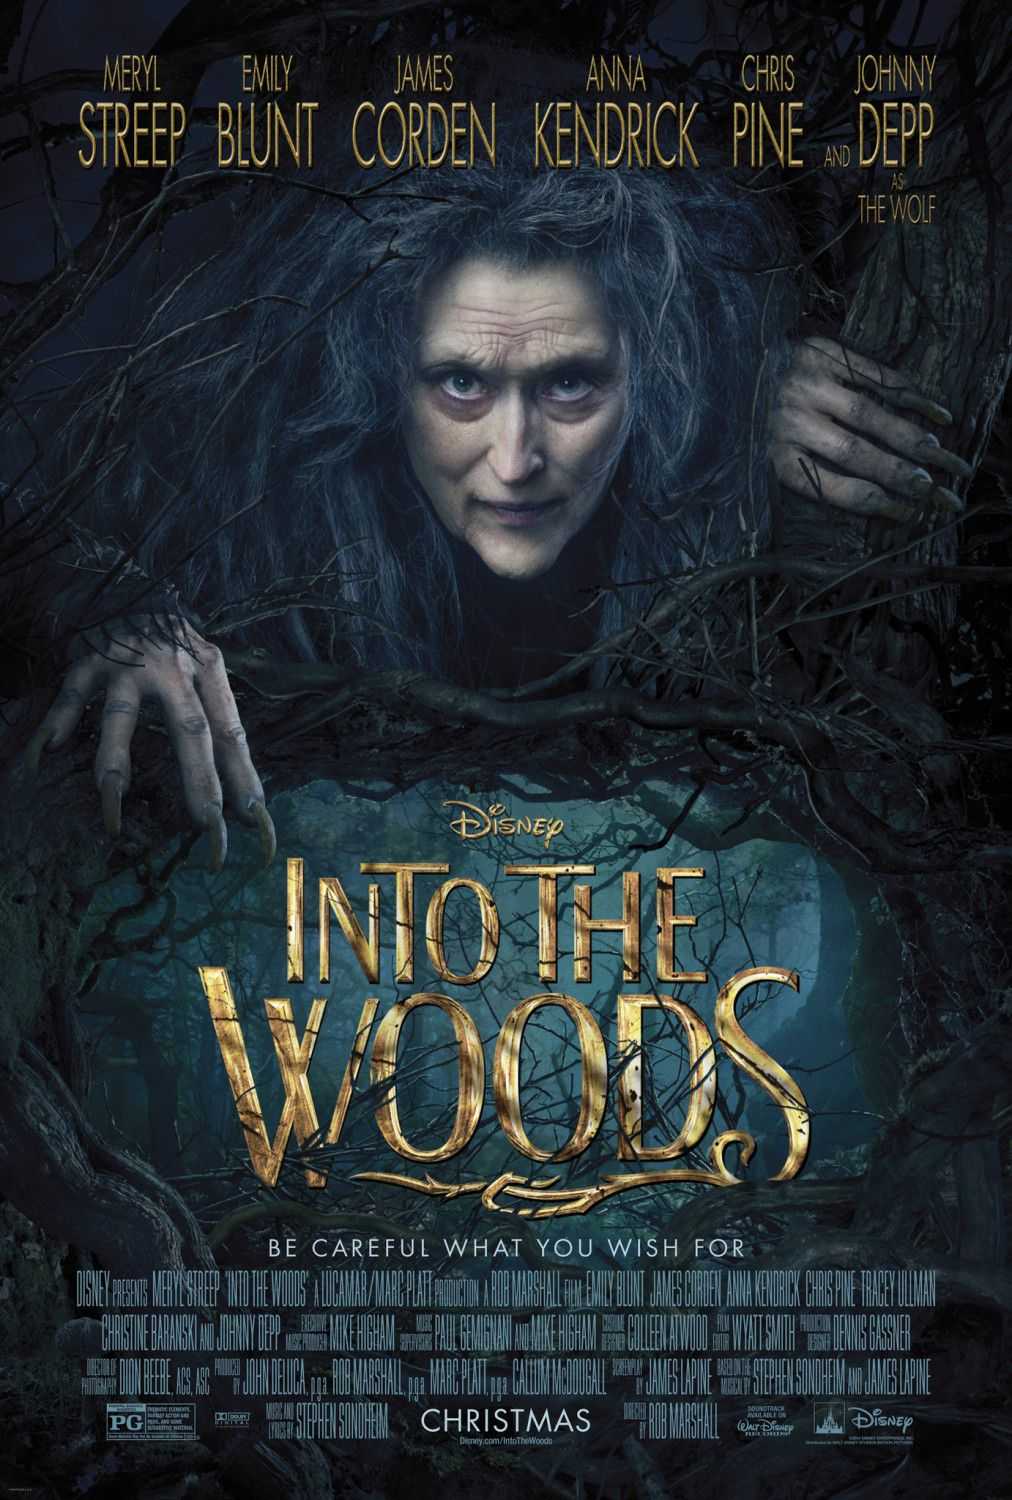 Into the Woods - poster - Meryl Streep - Emily Blunt - James Corden - Anna Kendrick - Chris Pine - Johnny Deep as the Wolf ... be careful what you wish for